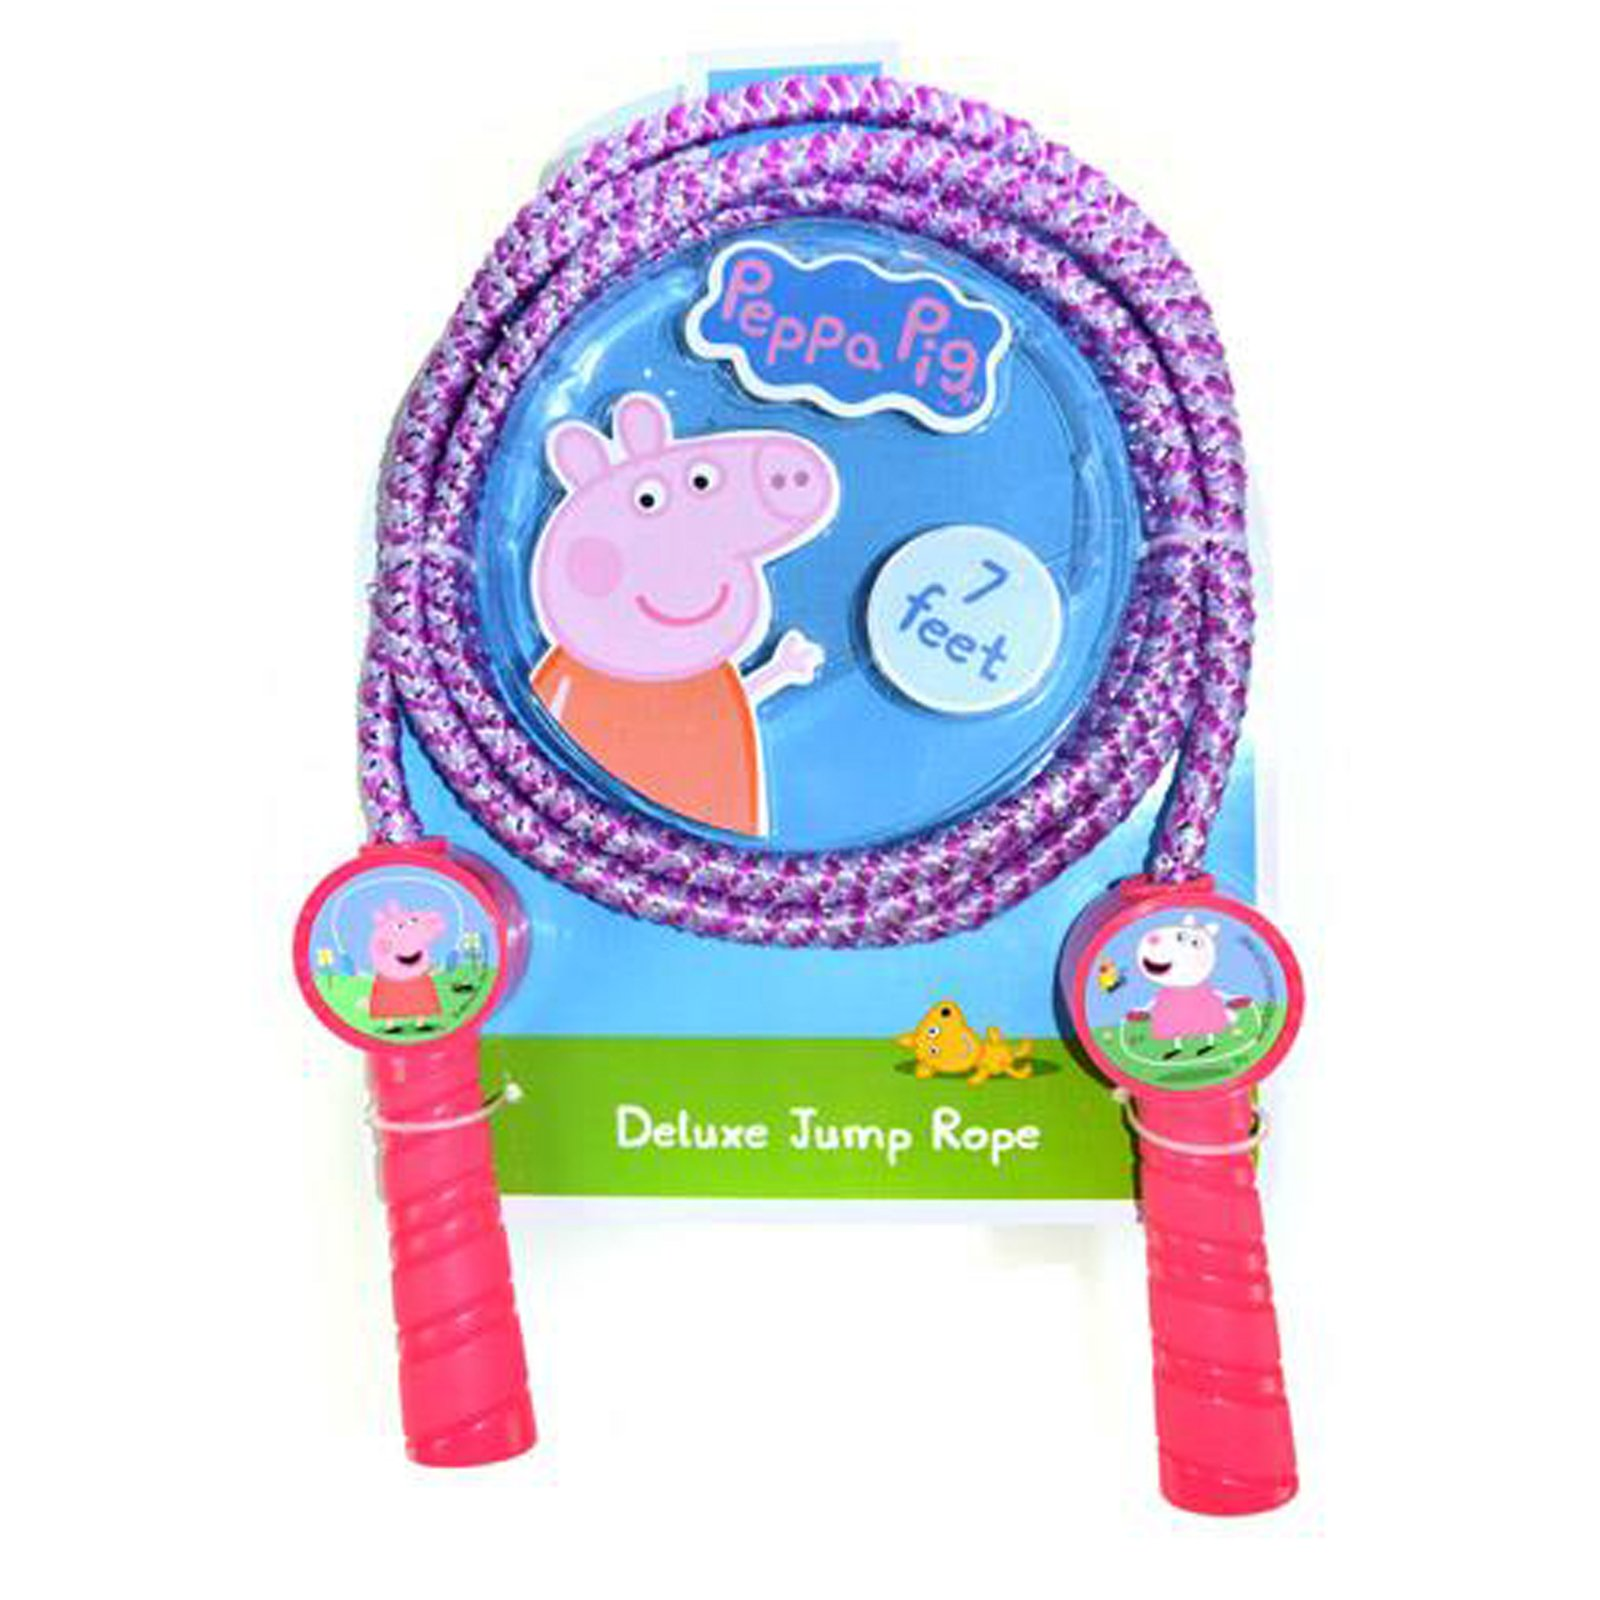 Peppa Pig Deluxe Jump Rope Molded Handles 7 Feet Promotes Exercise - Pink